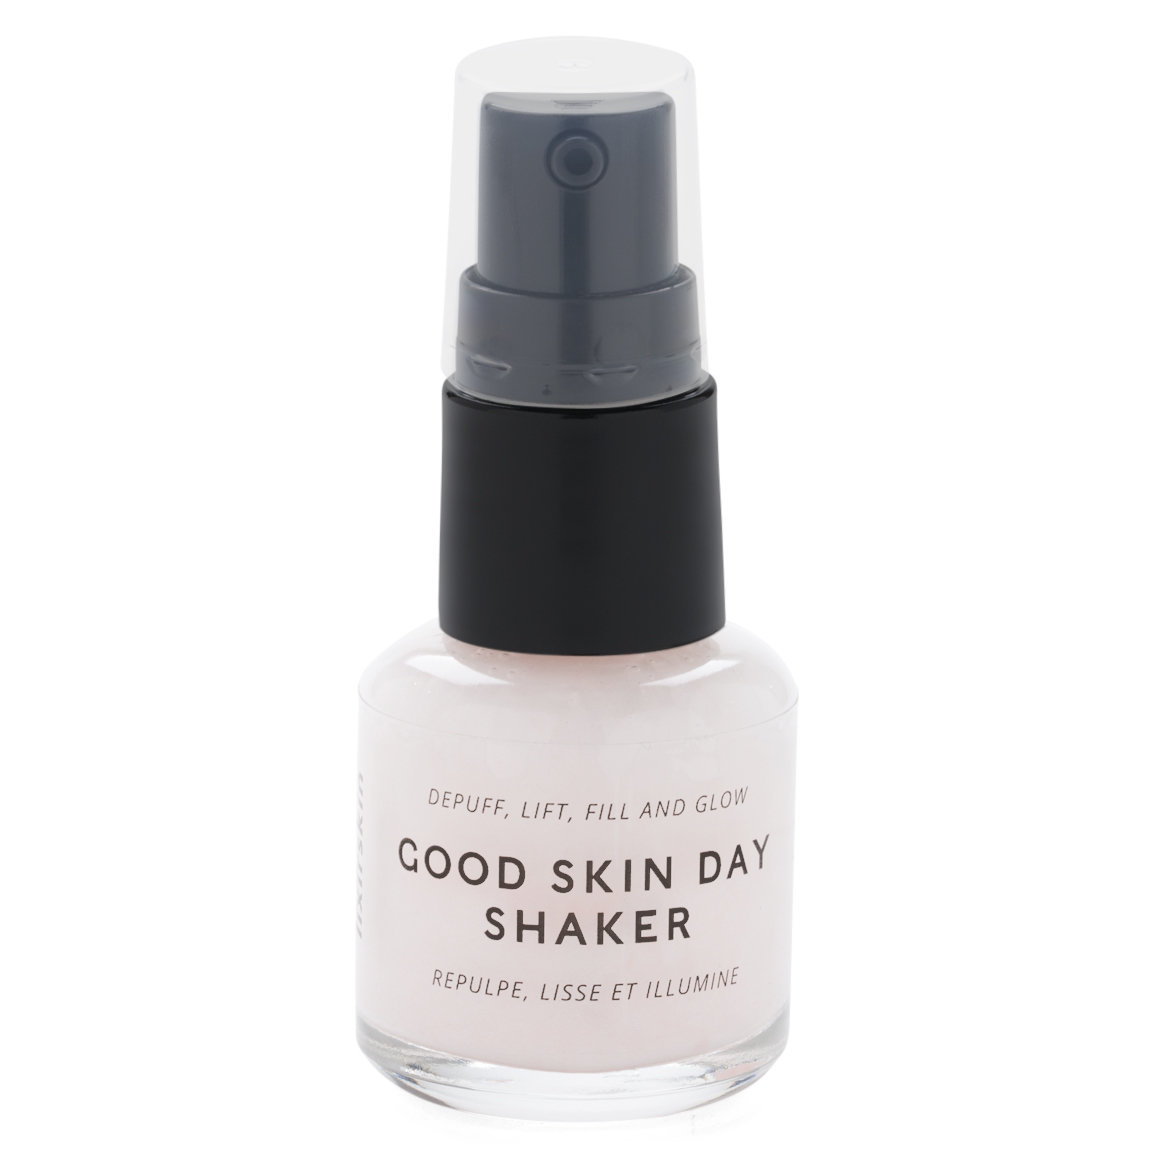 Lixirskin Good Skin Day Shaker product swatch.